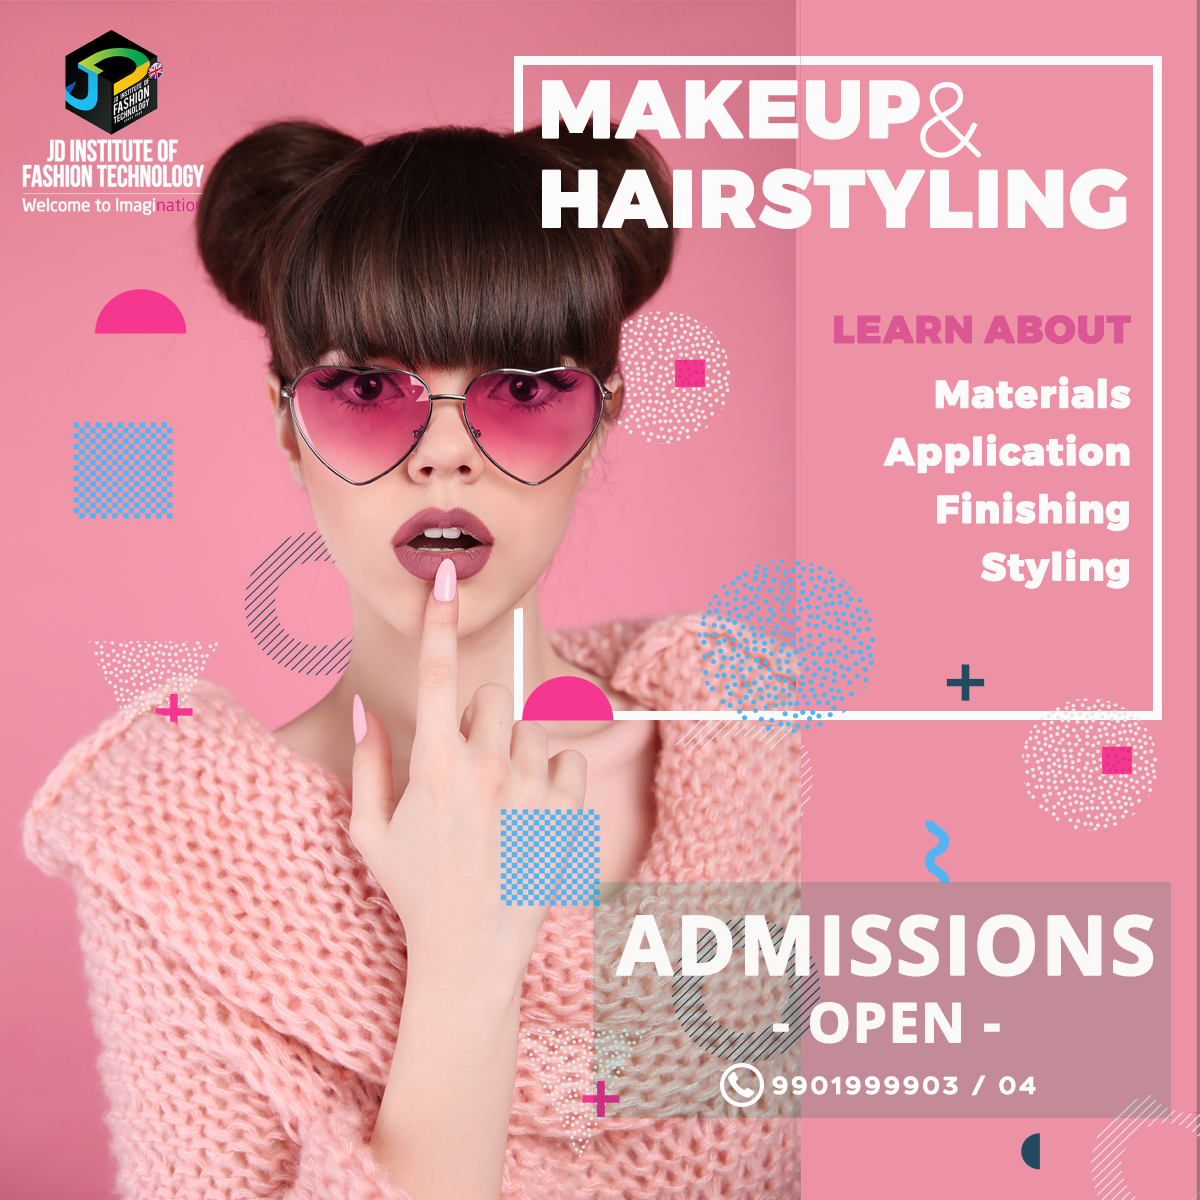 Admissions For Makeup Artistry And Hairstyling Is Open Now At Jd Institute Of Fashion Technology Know More About The C Makeup Makeup Course Technology Fashion